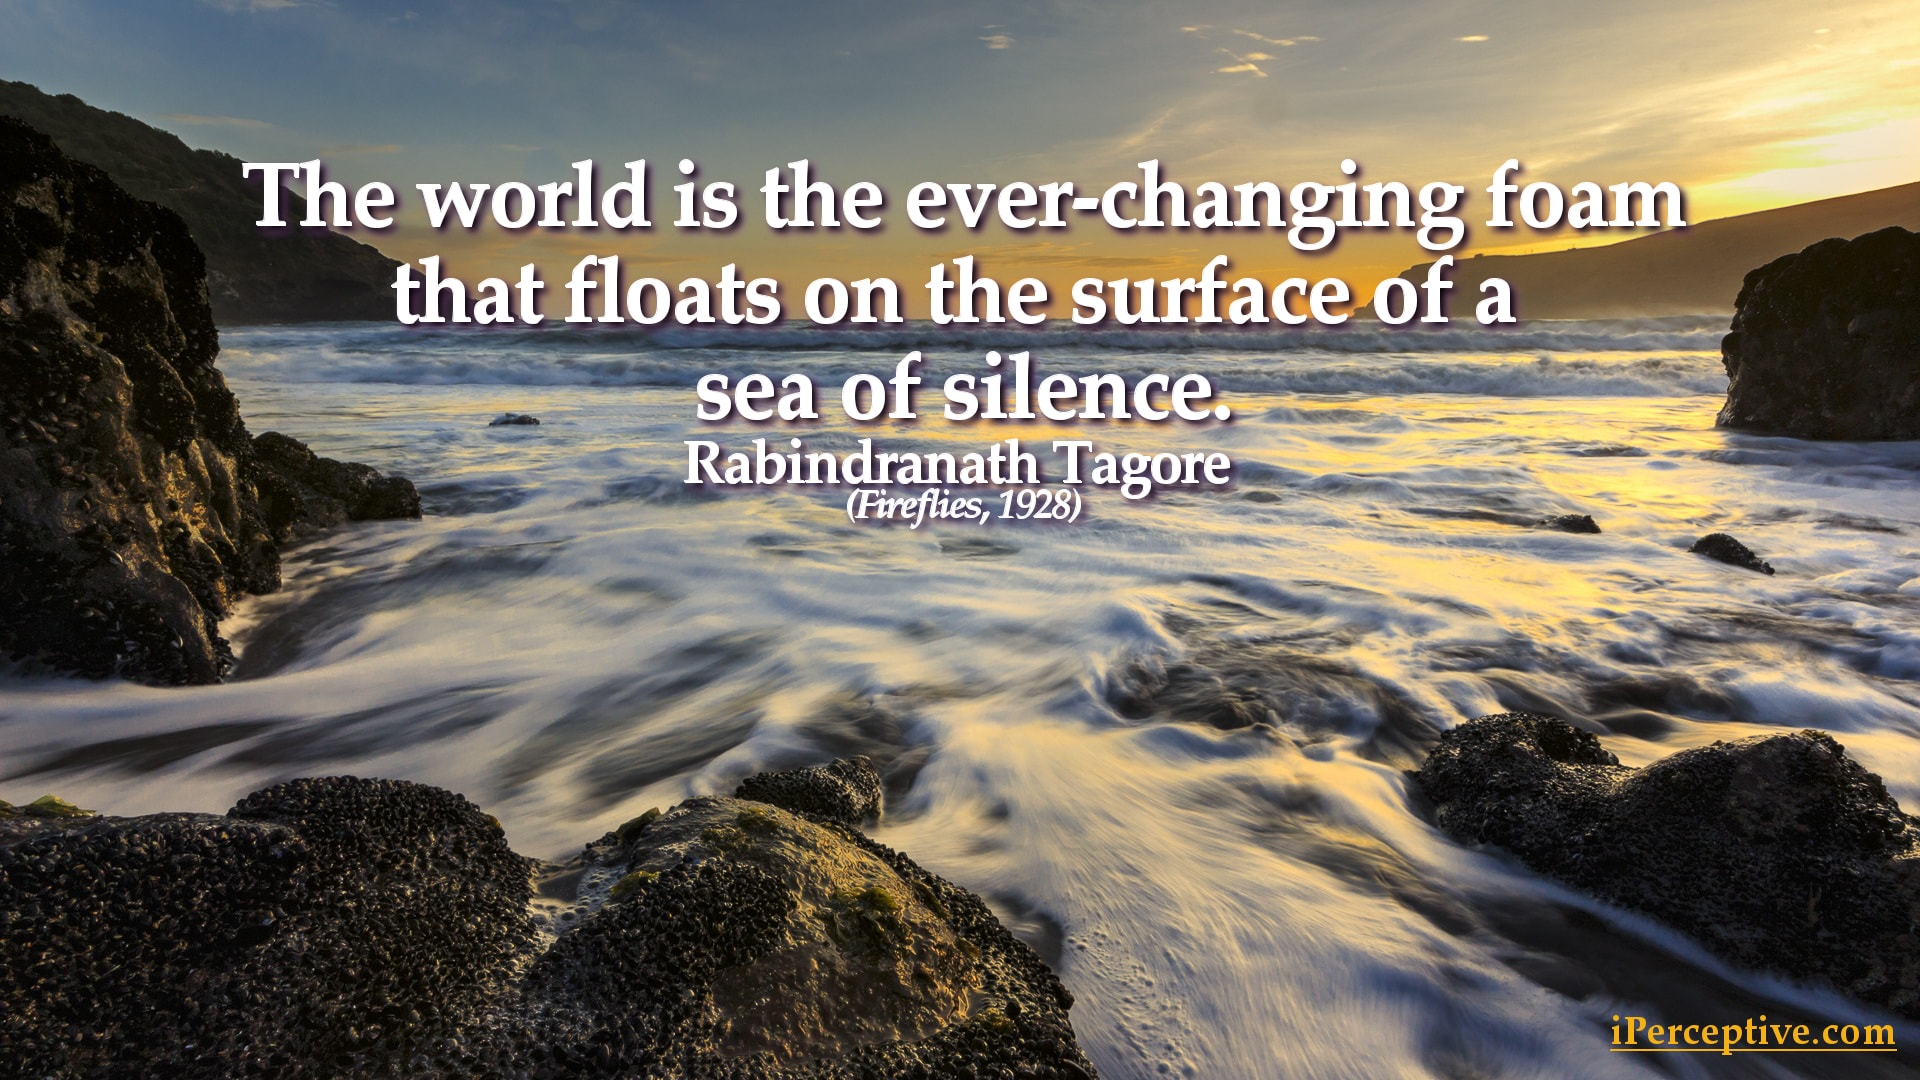 Rabindranath Tagore Quote: The world is the ever-changing foam...